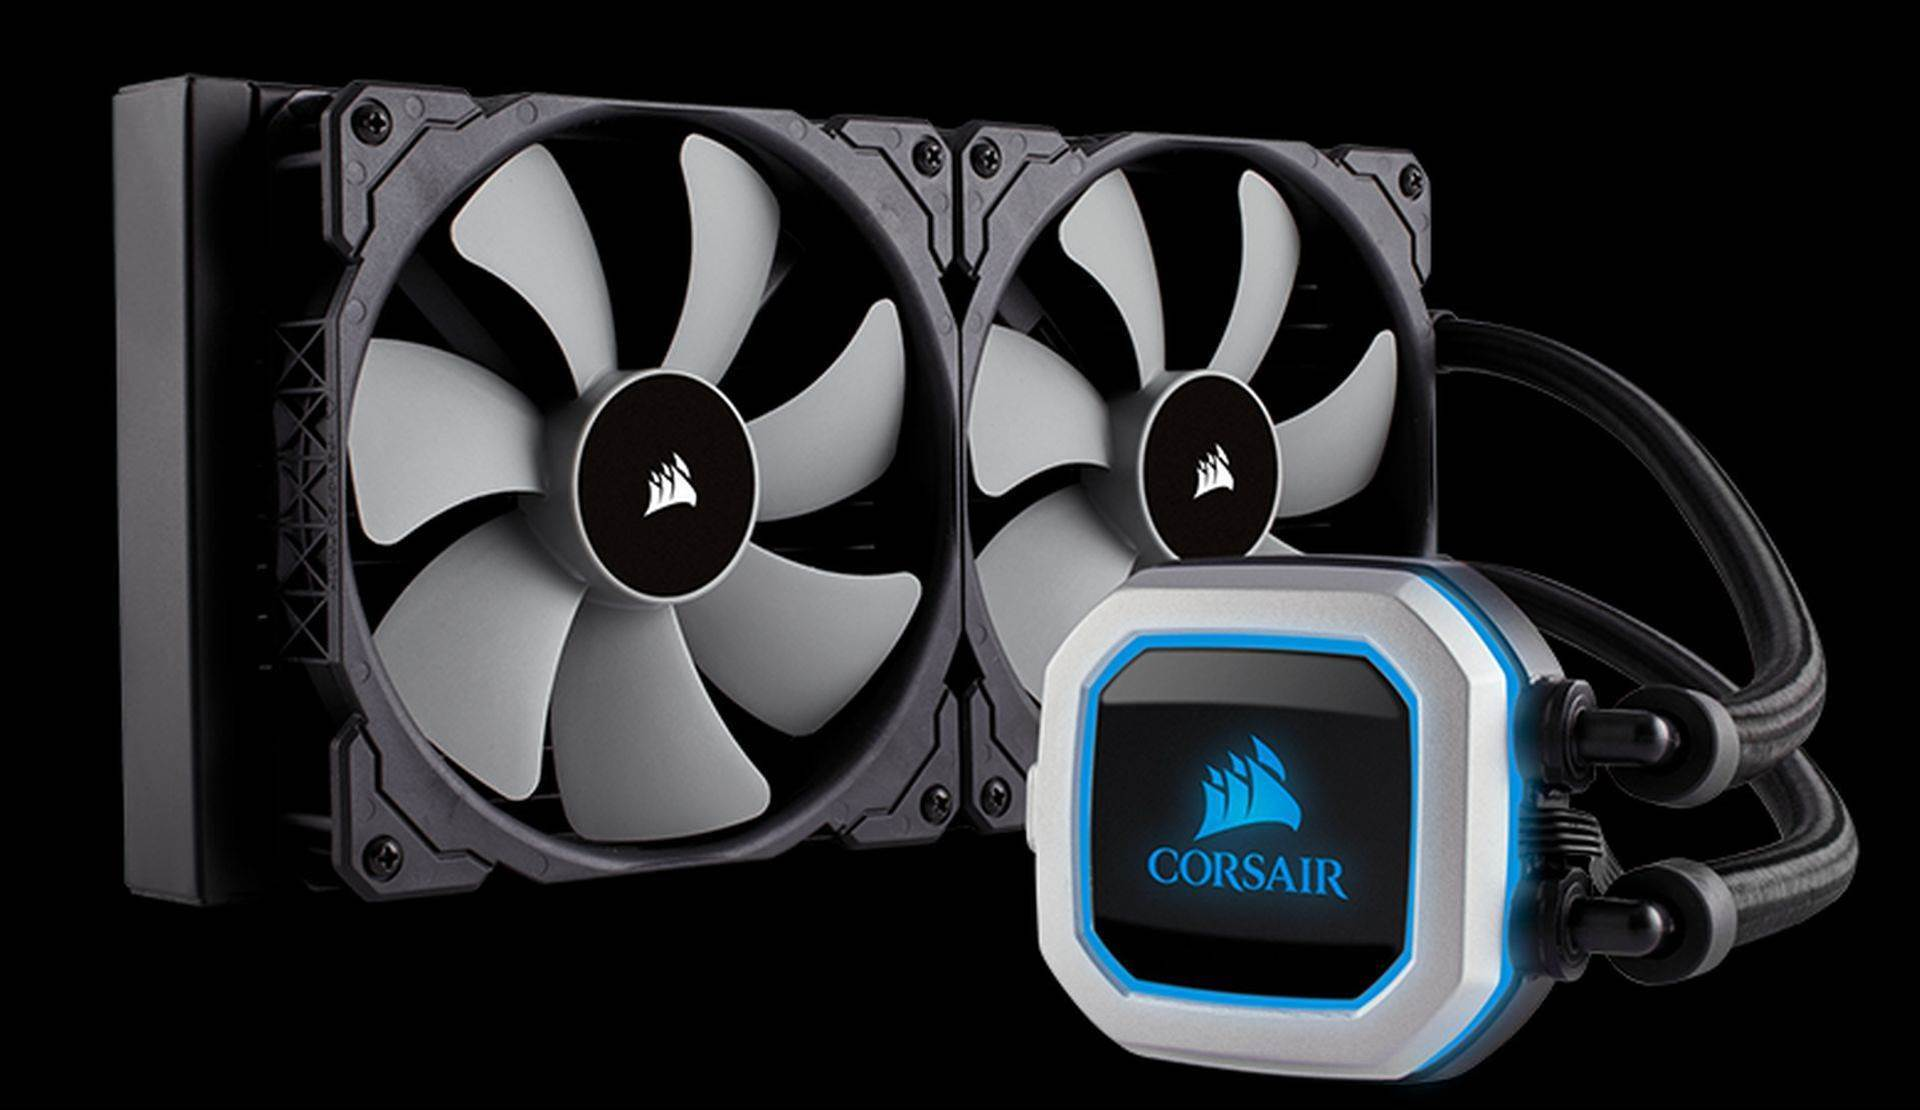 Review: Corsair H115i PRO AIO Water Cooler